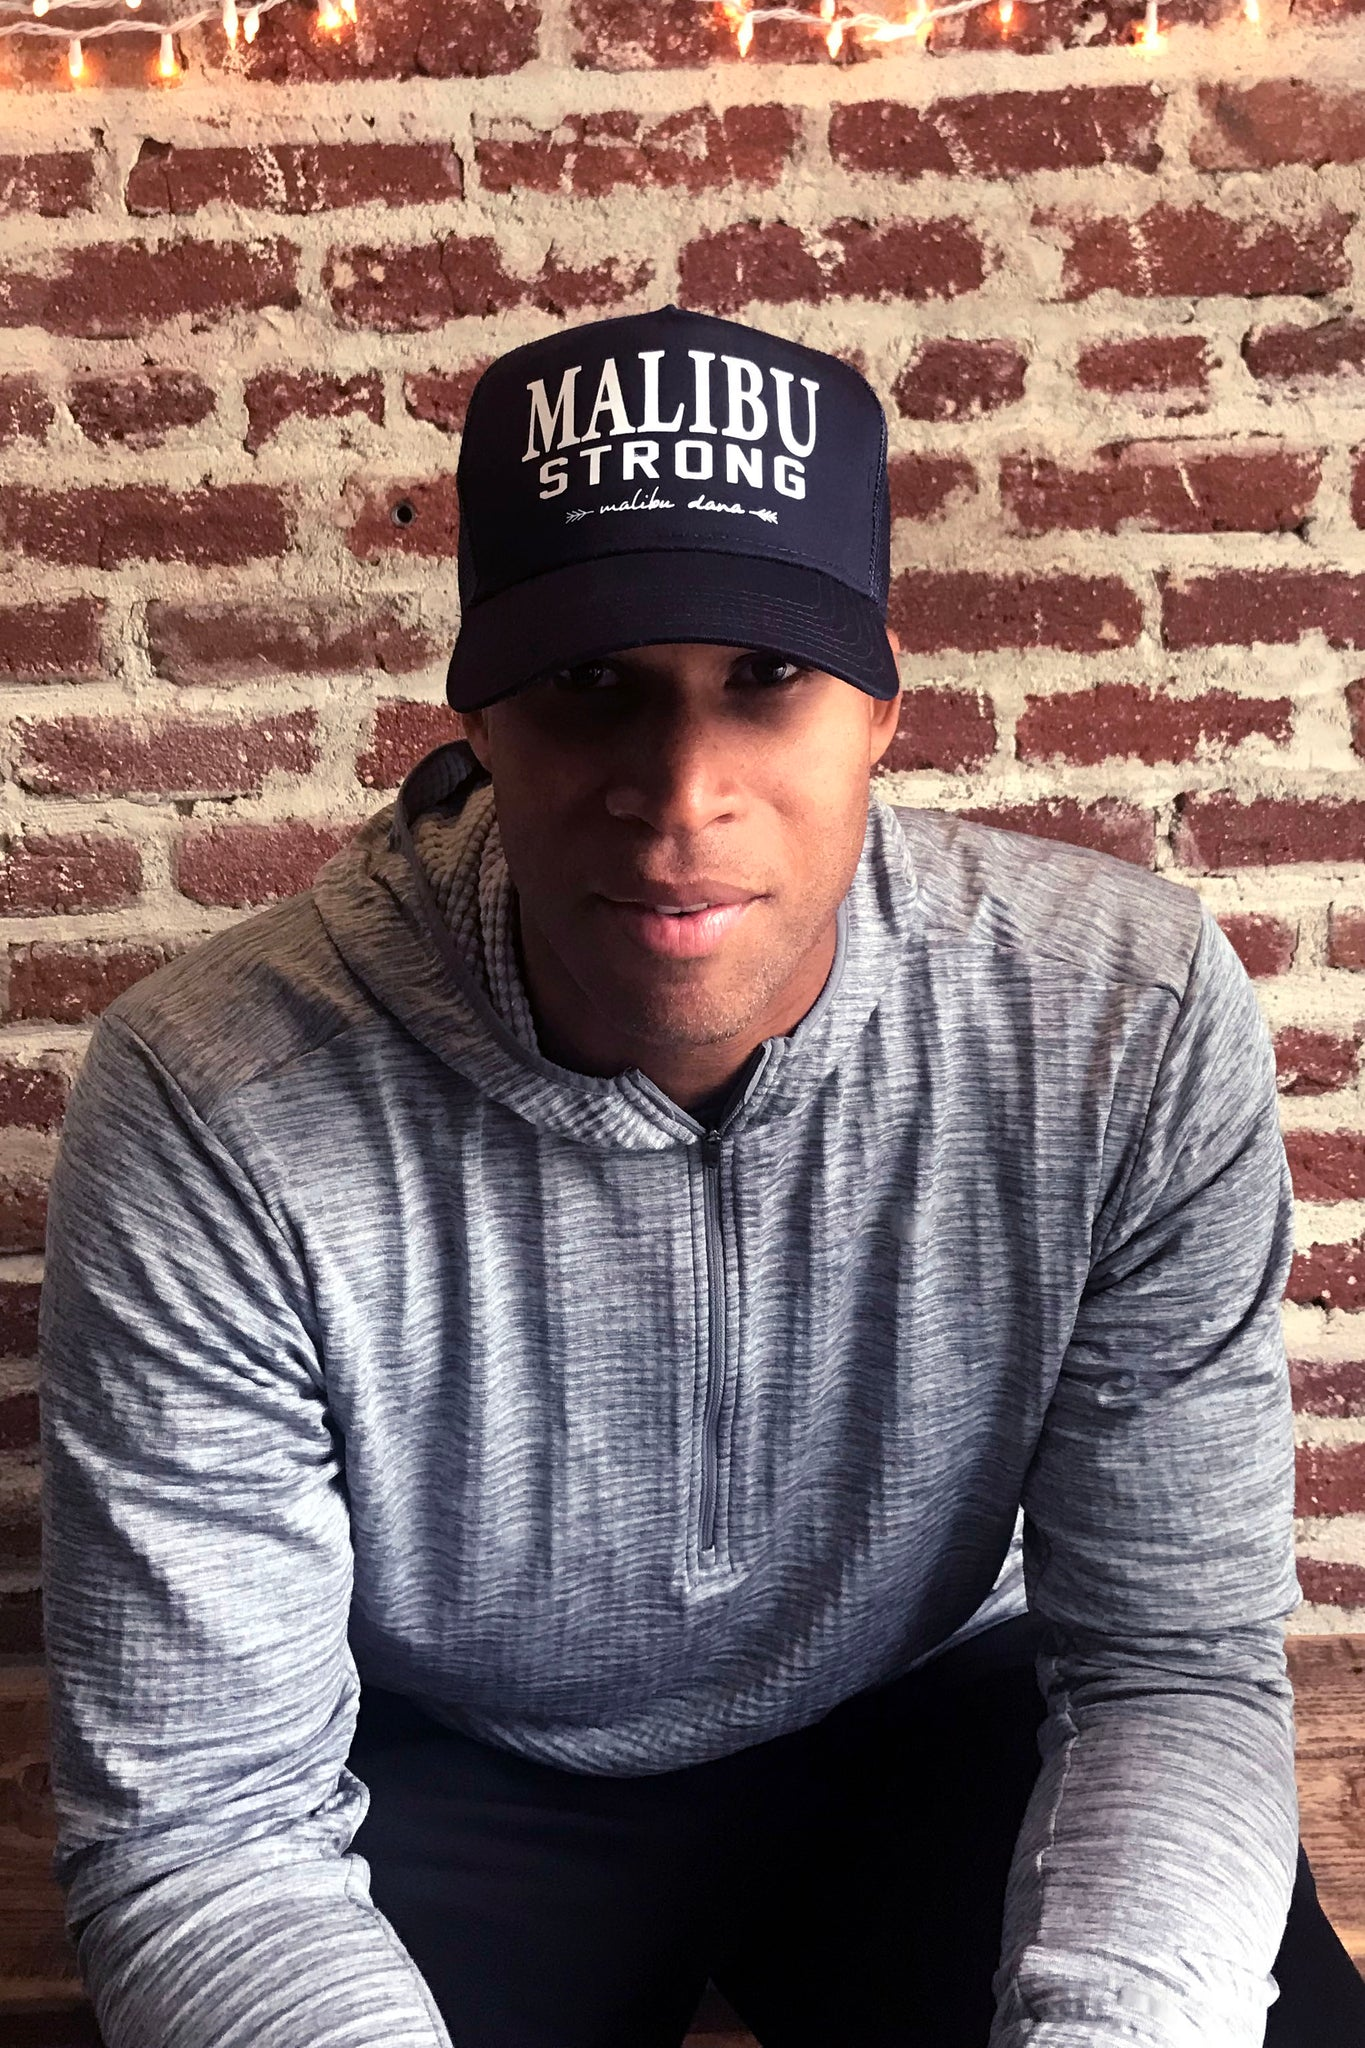 ae3b643e98a42 ... Load image into Gallery viewer, Malibu Strong Unisex Trucker Hat ...